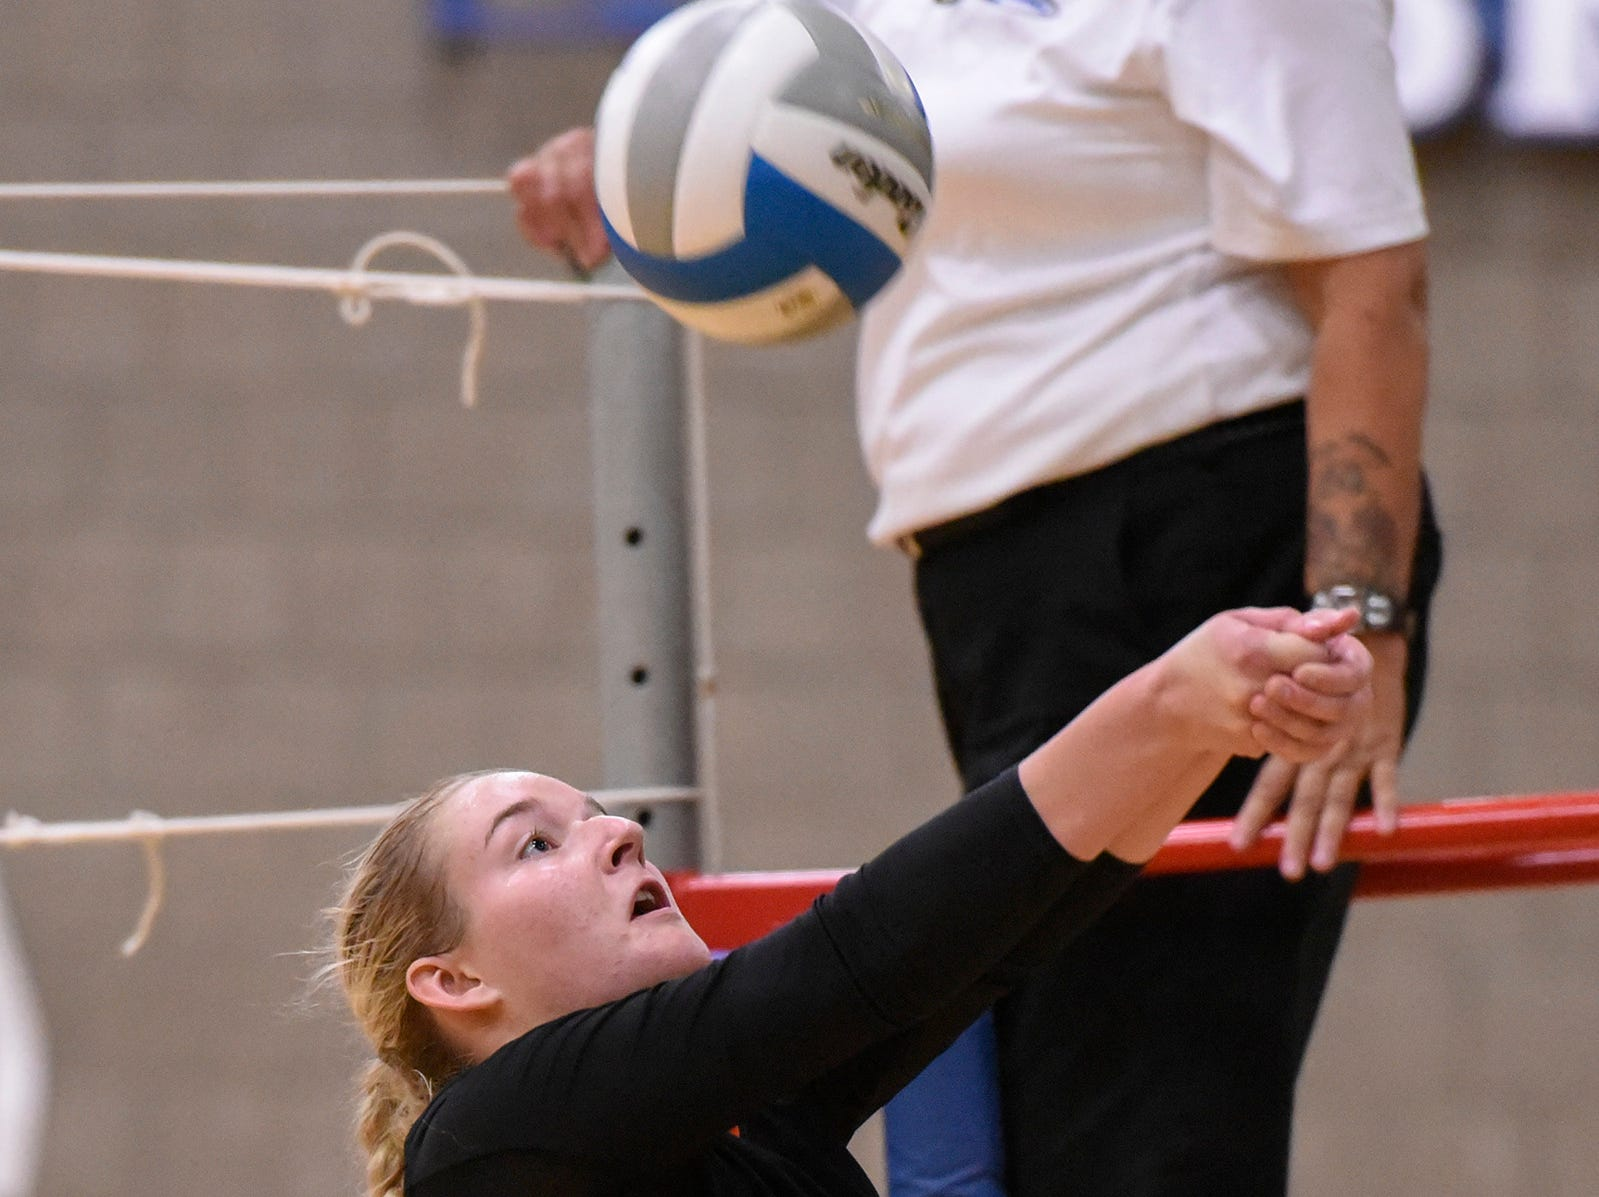 Tech's Sydney Poepping bumps the ball over the net during the first game.